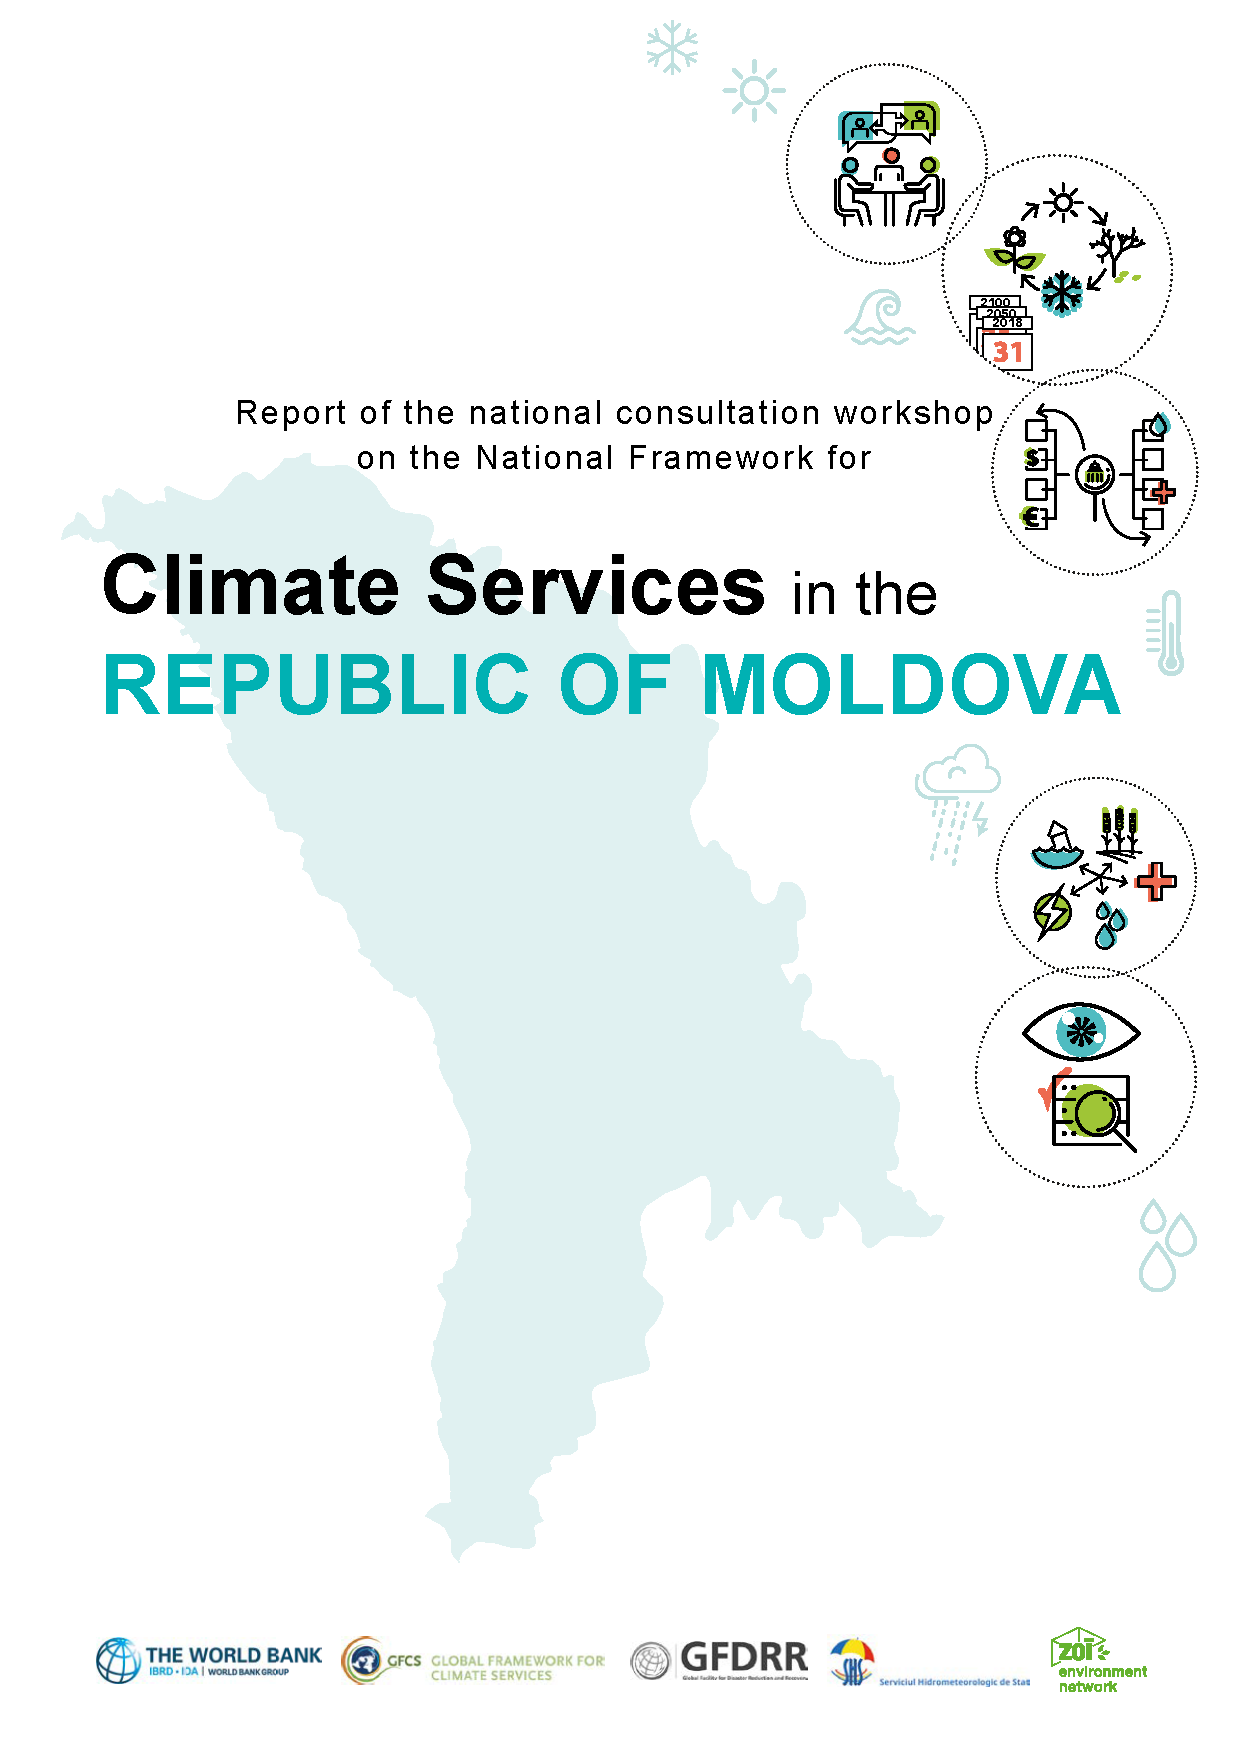 Report of the National Consultation Workshop on the National Framework for Climate Services in the Republic of Moldova